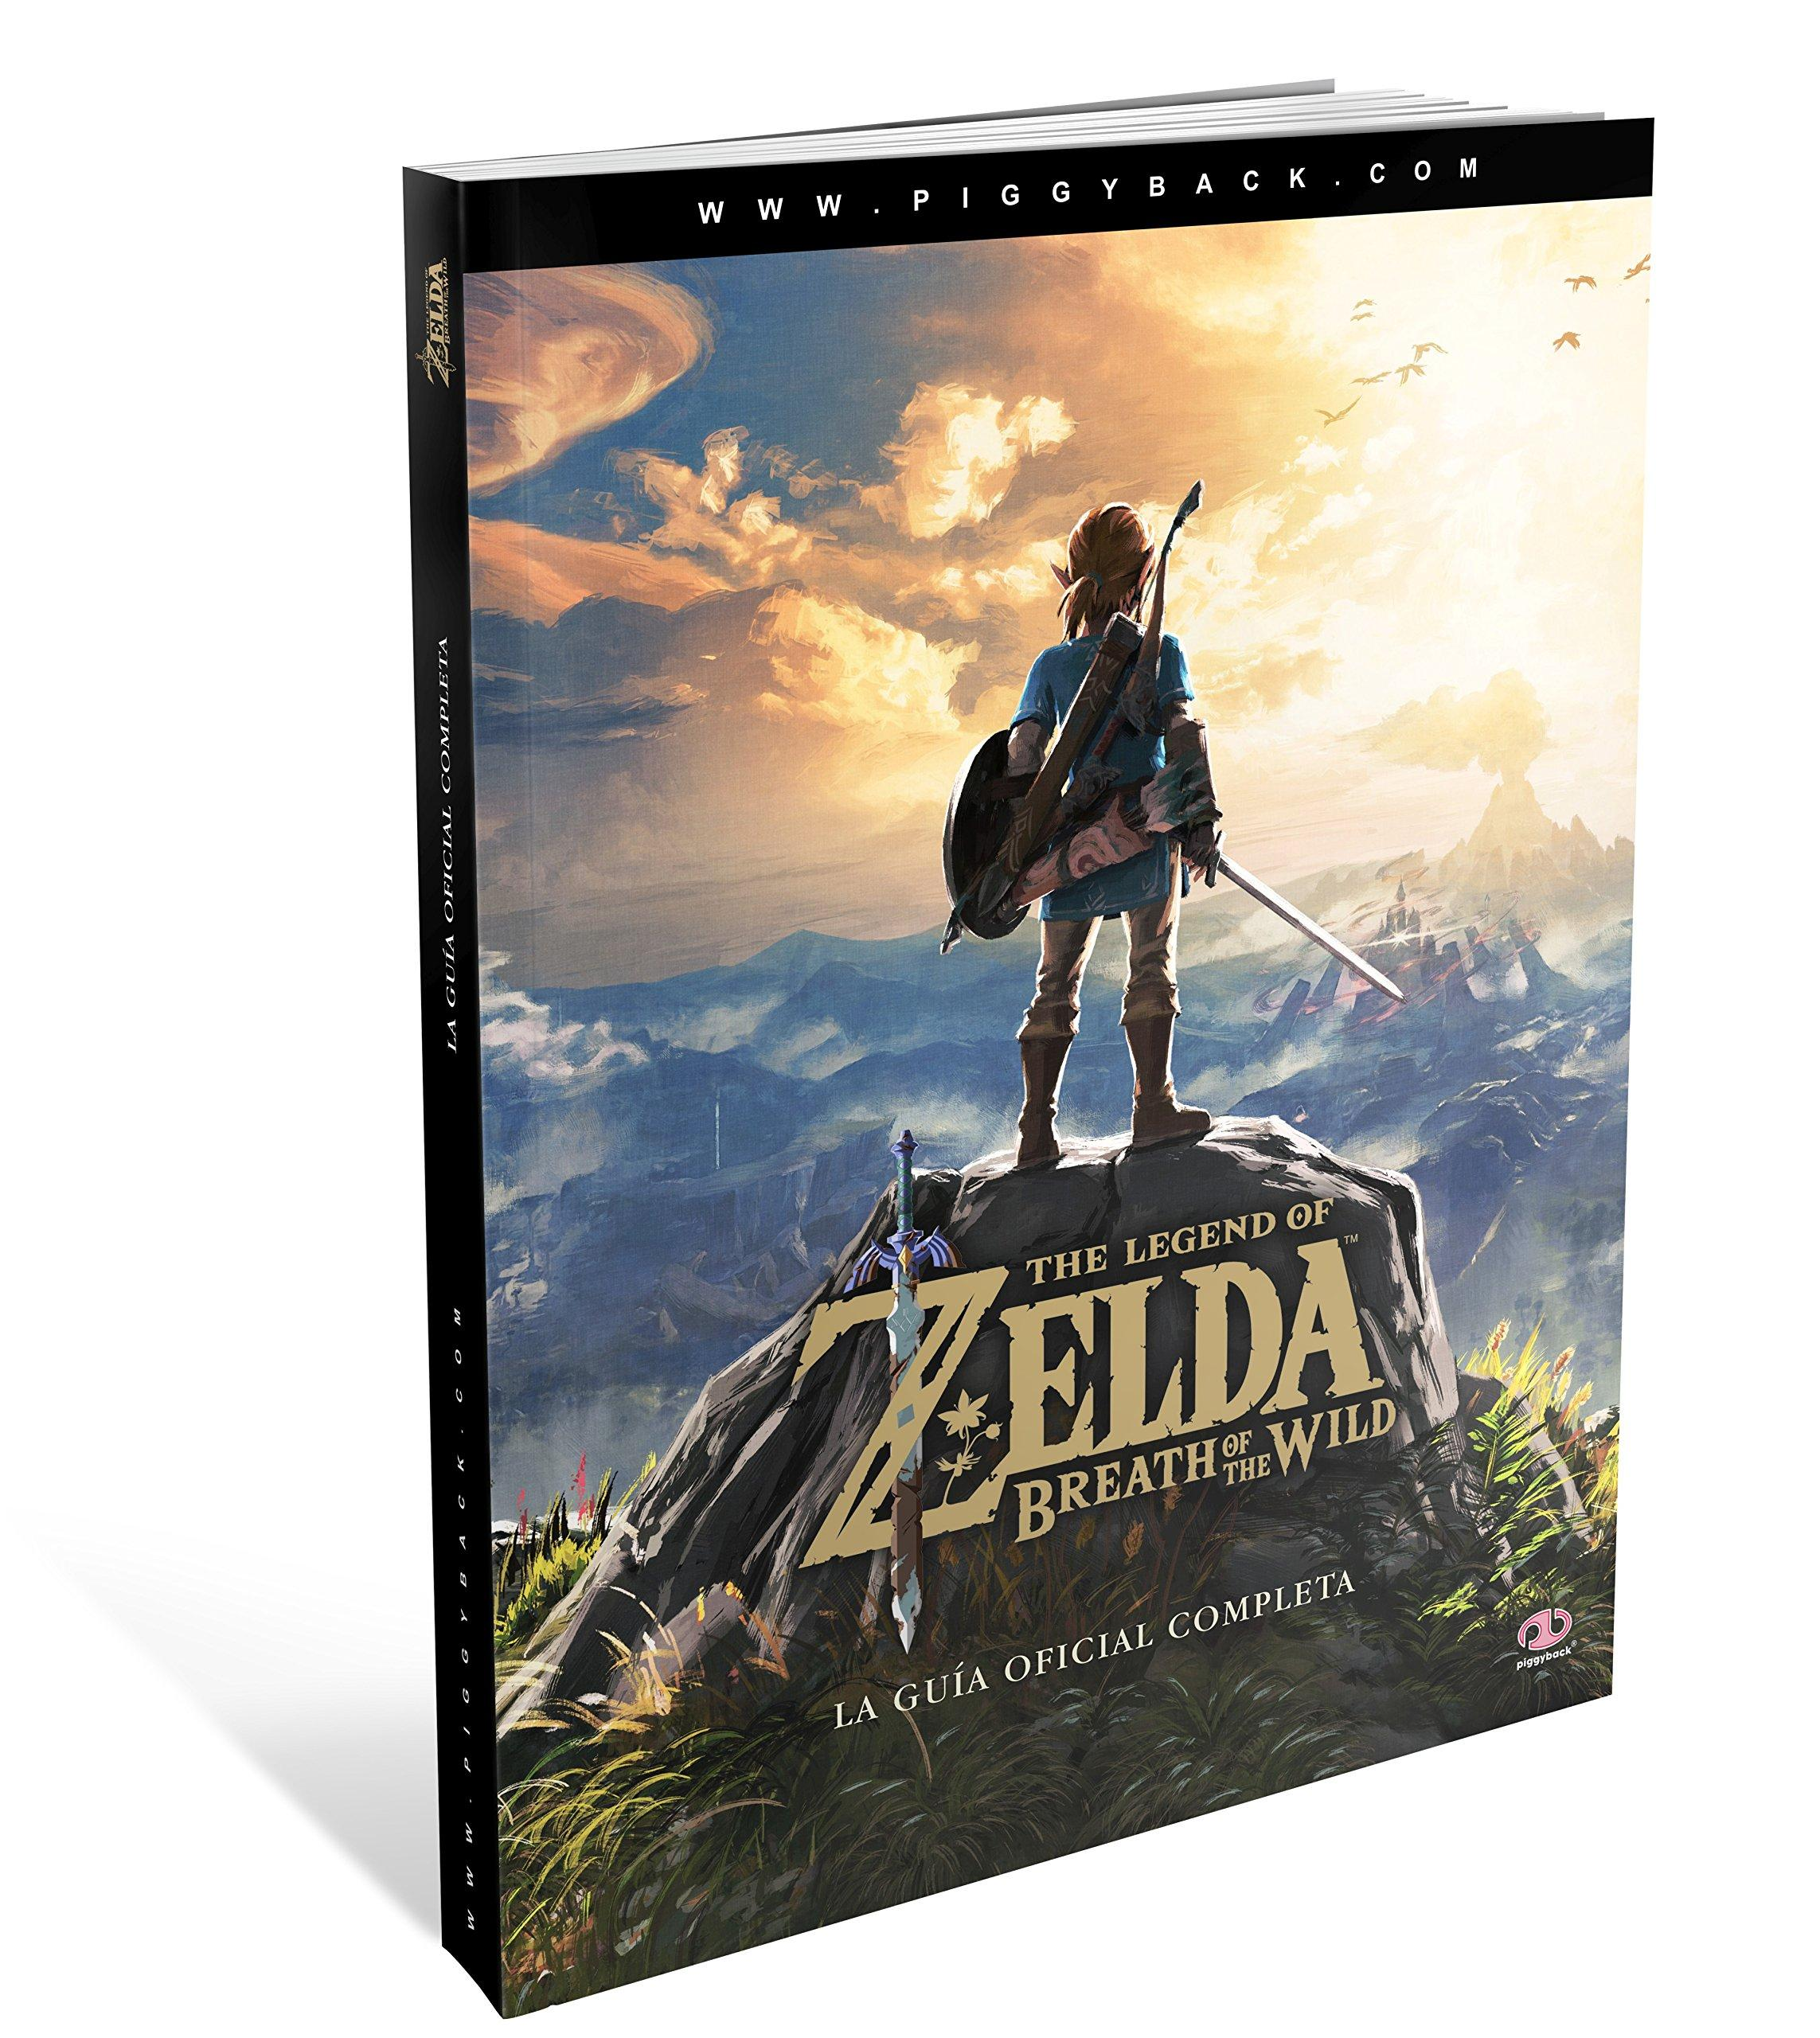 The Legend Of Zelda. Breath Of The Wild. La guía oficial completa - Edición estándar: Amazon.es: Vv.Aa., Vv.Aa.: Libros